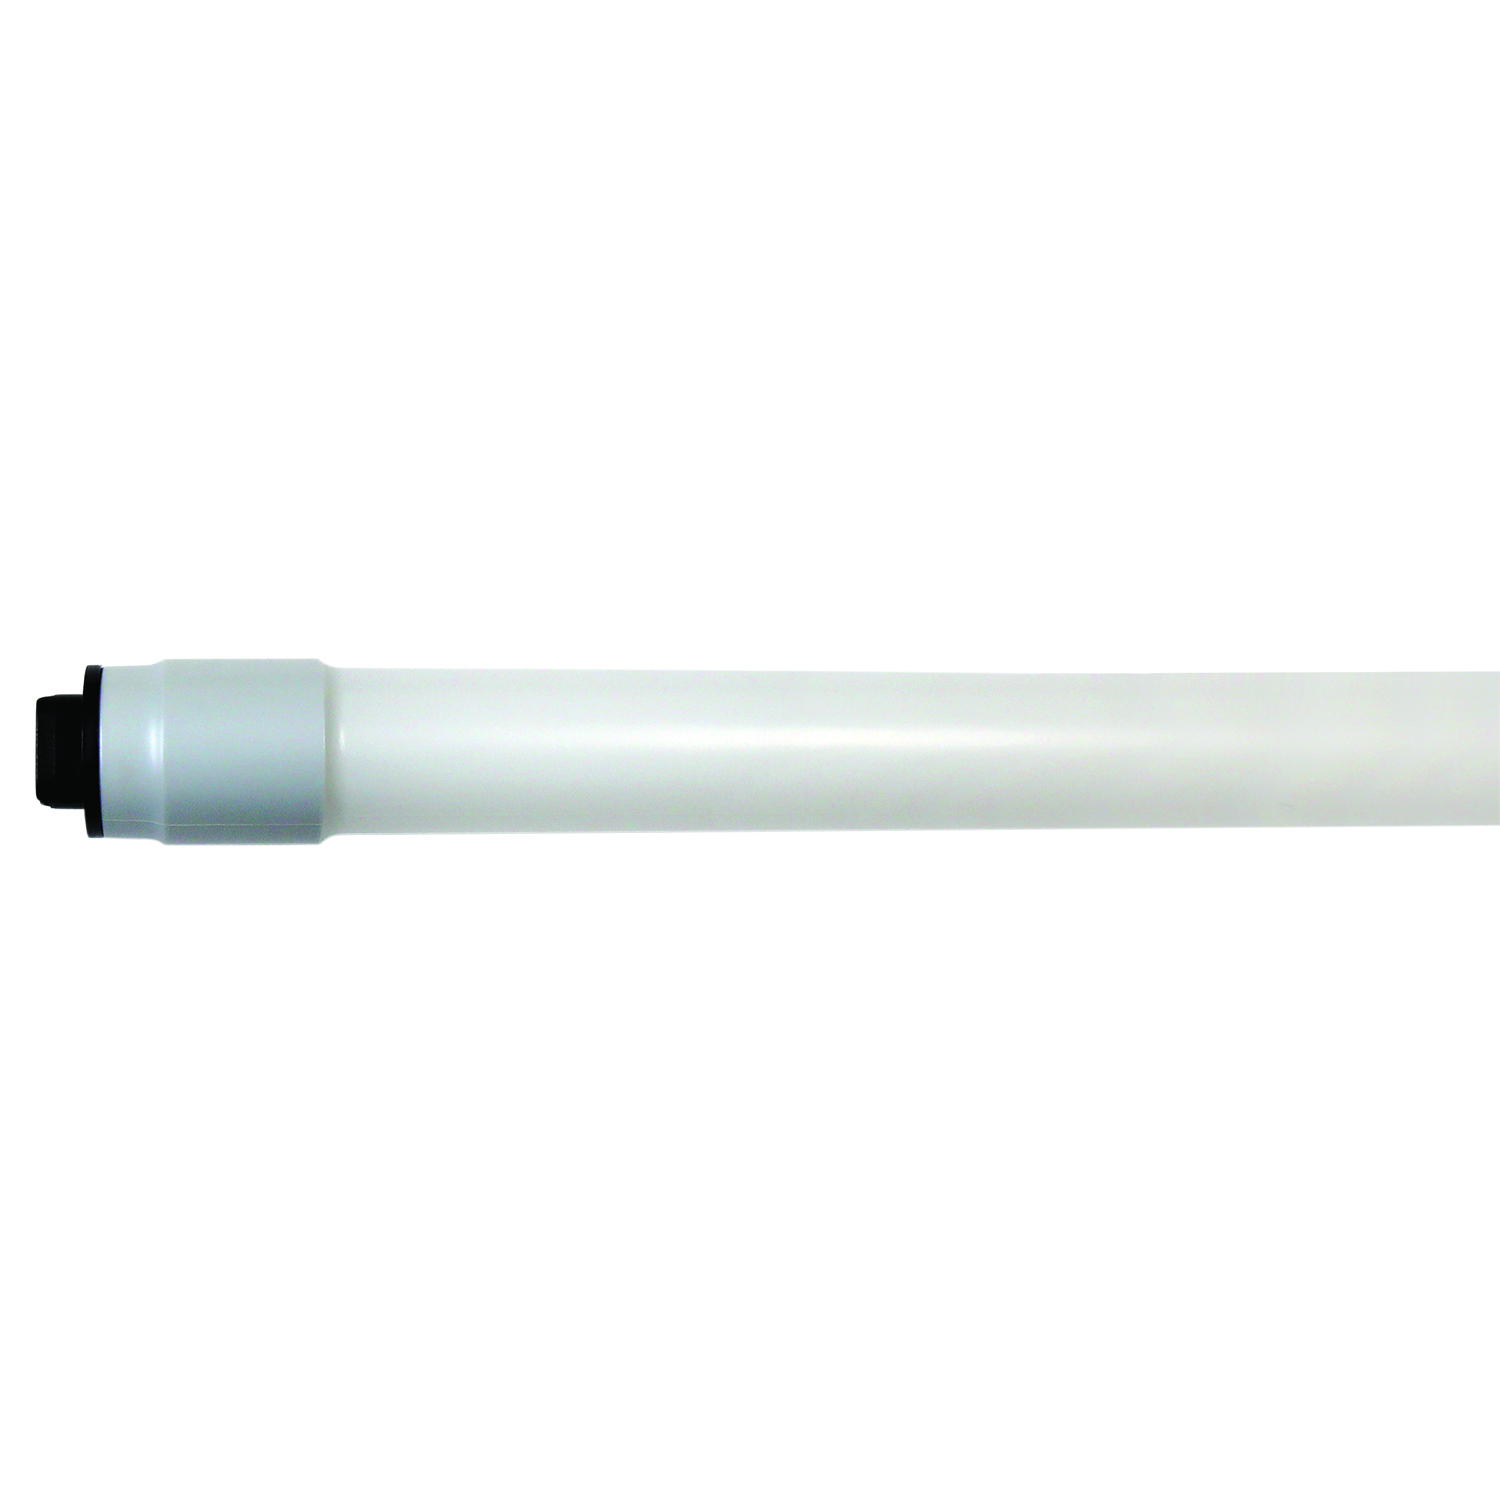 "T896FR42/850/BYP2/RDC/LED 82878 LED T8 96"" 42W 5000K Double-End Bypass Non-Dimmable R17d ProLED"